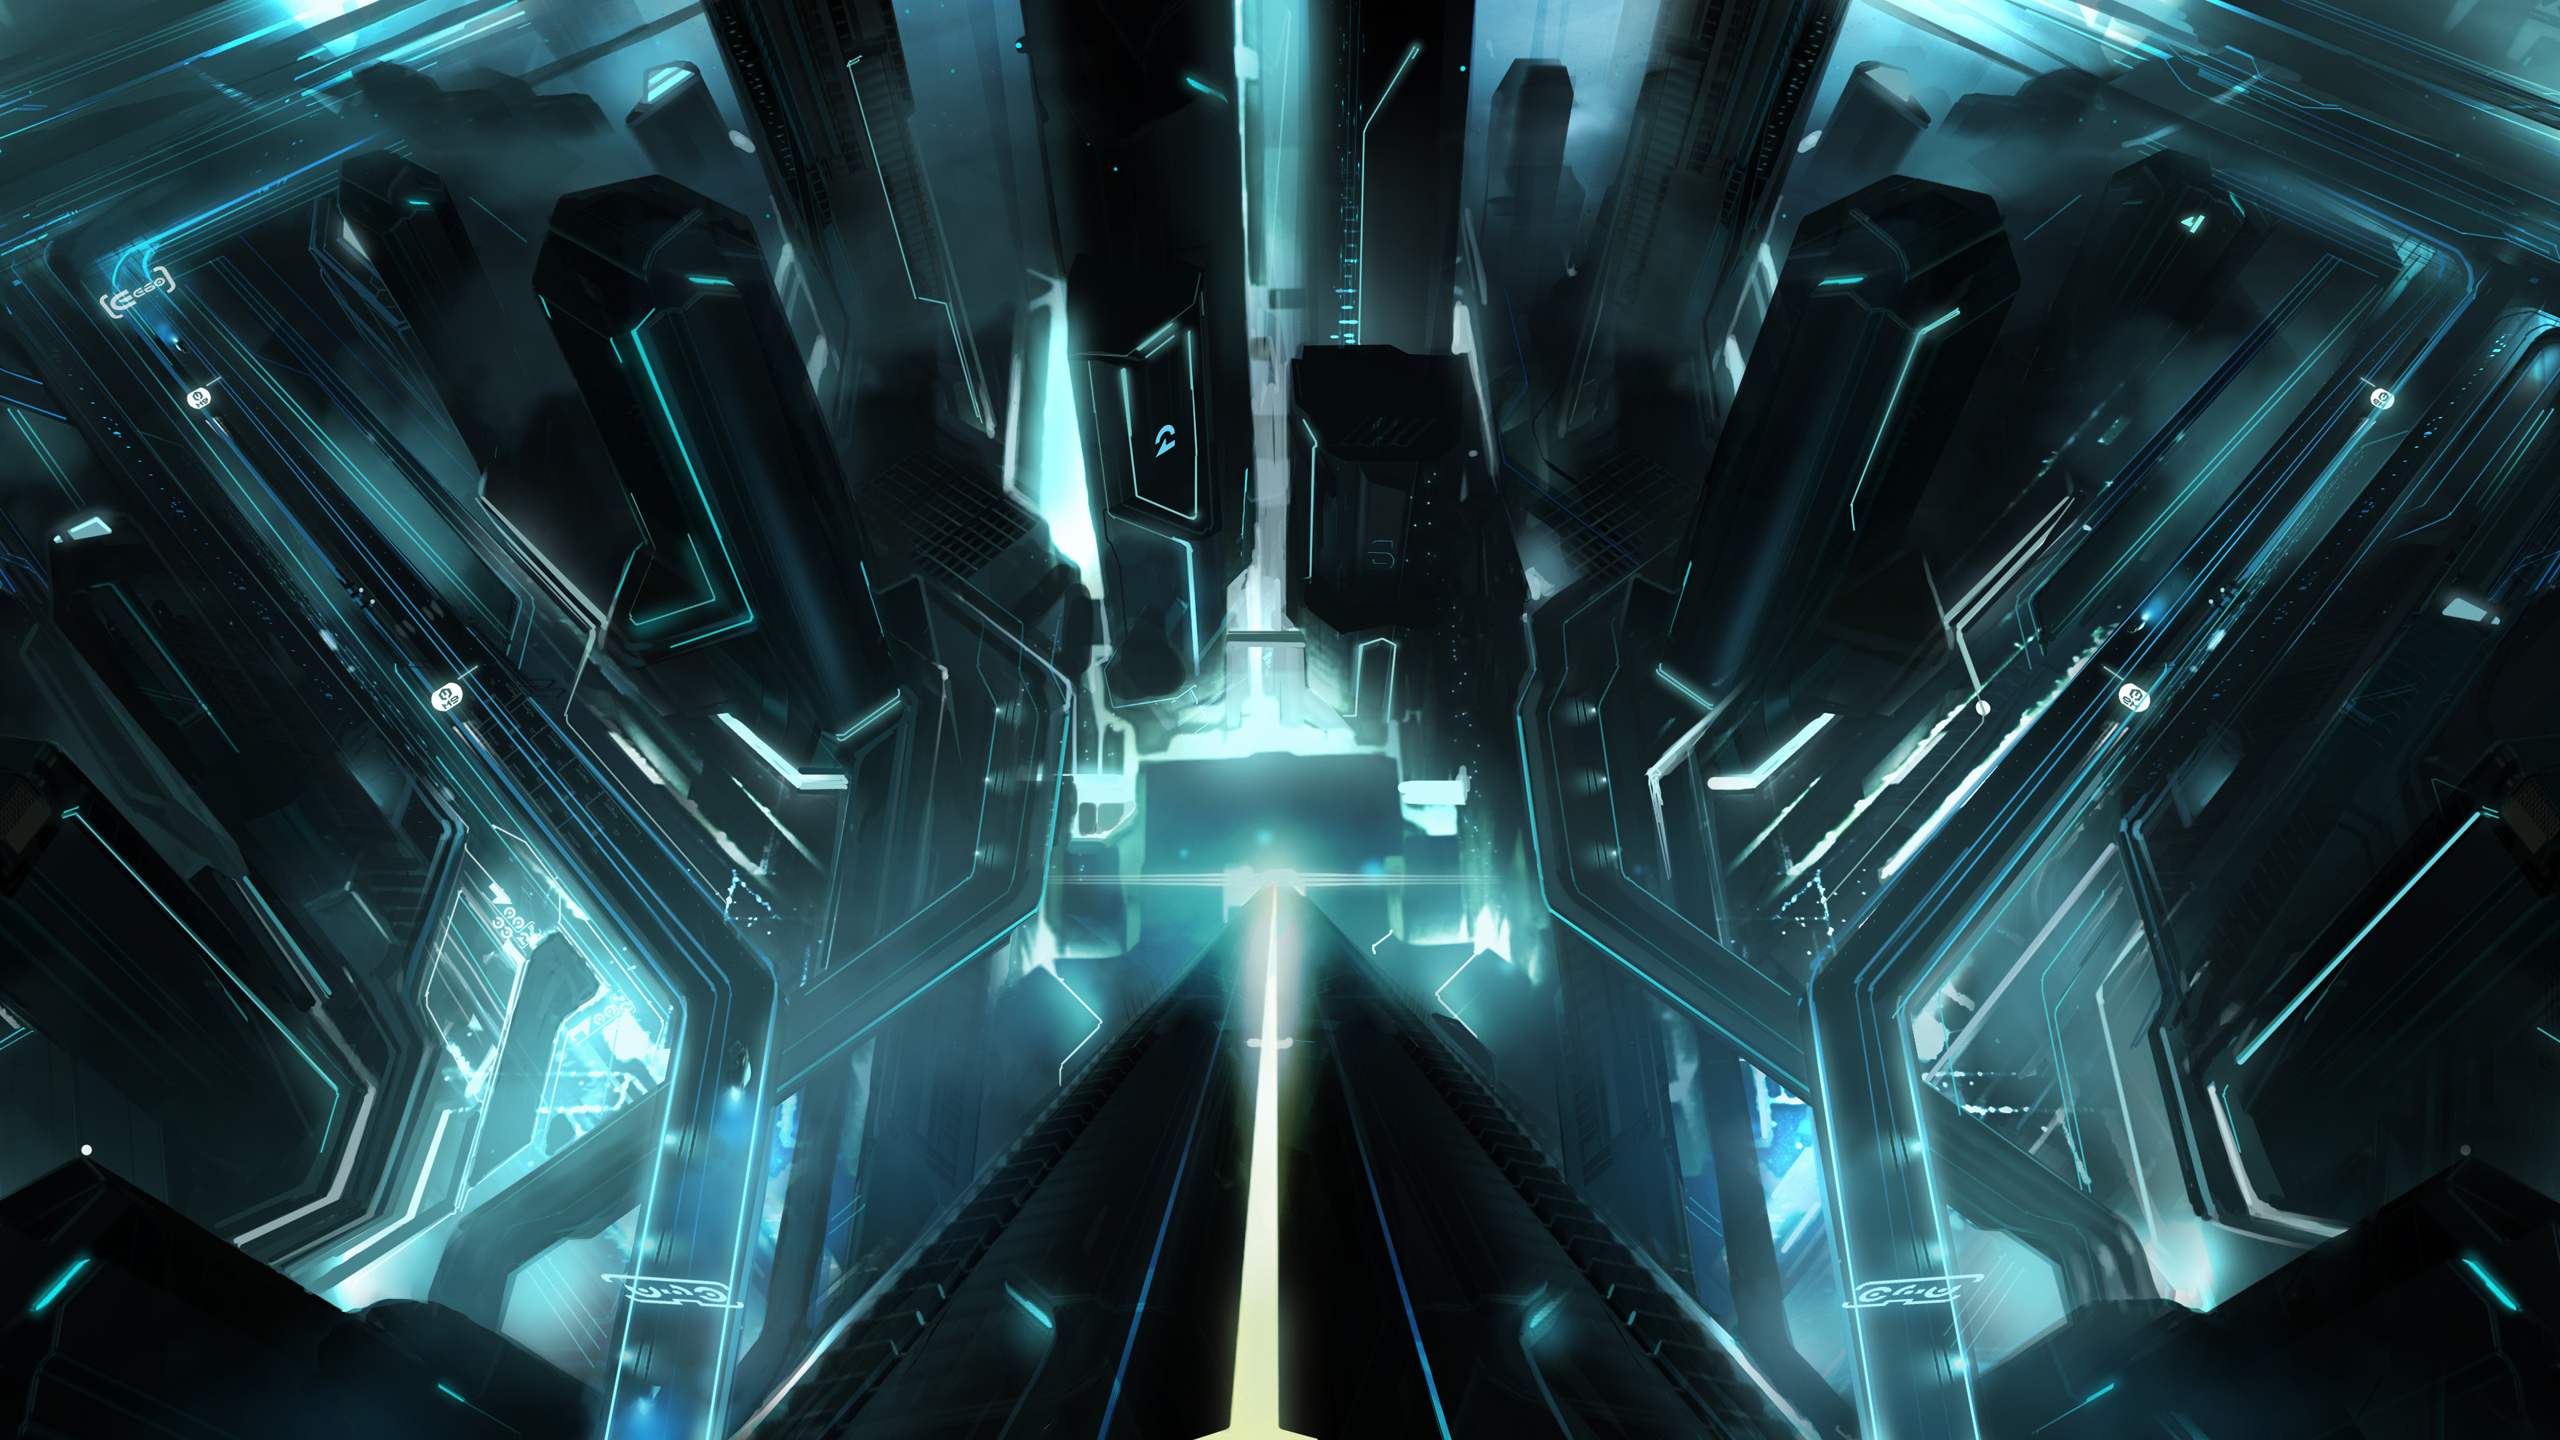 Tron City Wallpapers HD Wallpapers 2560x1440